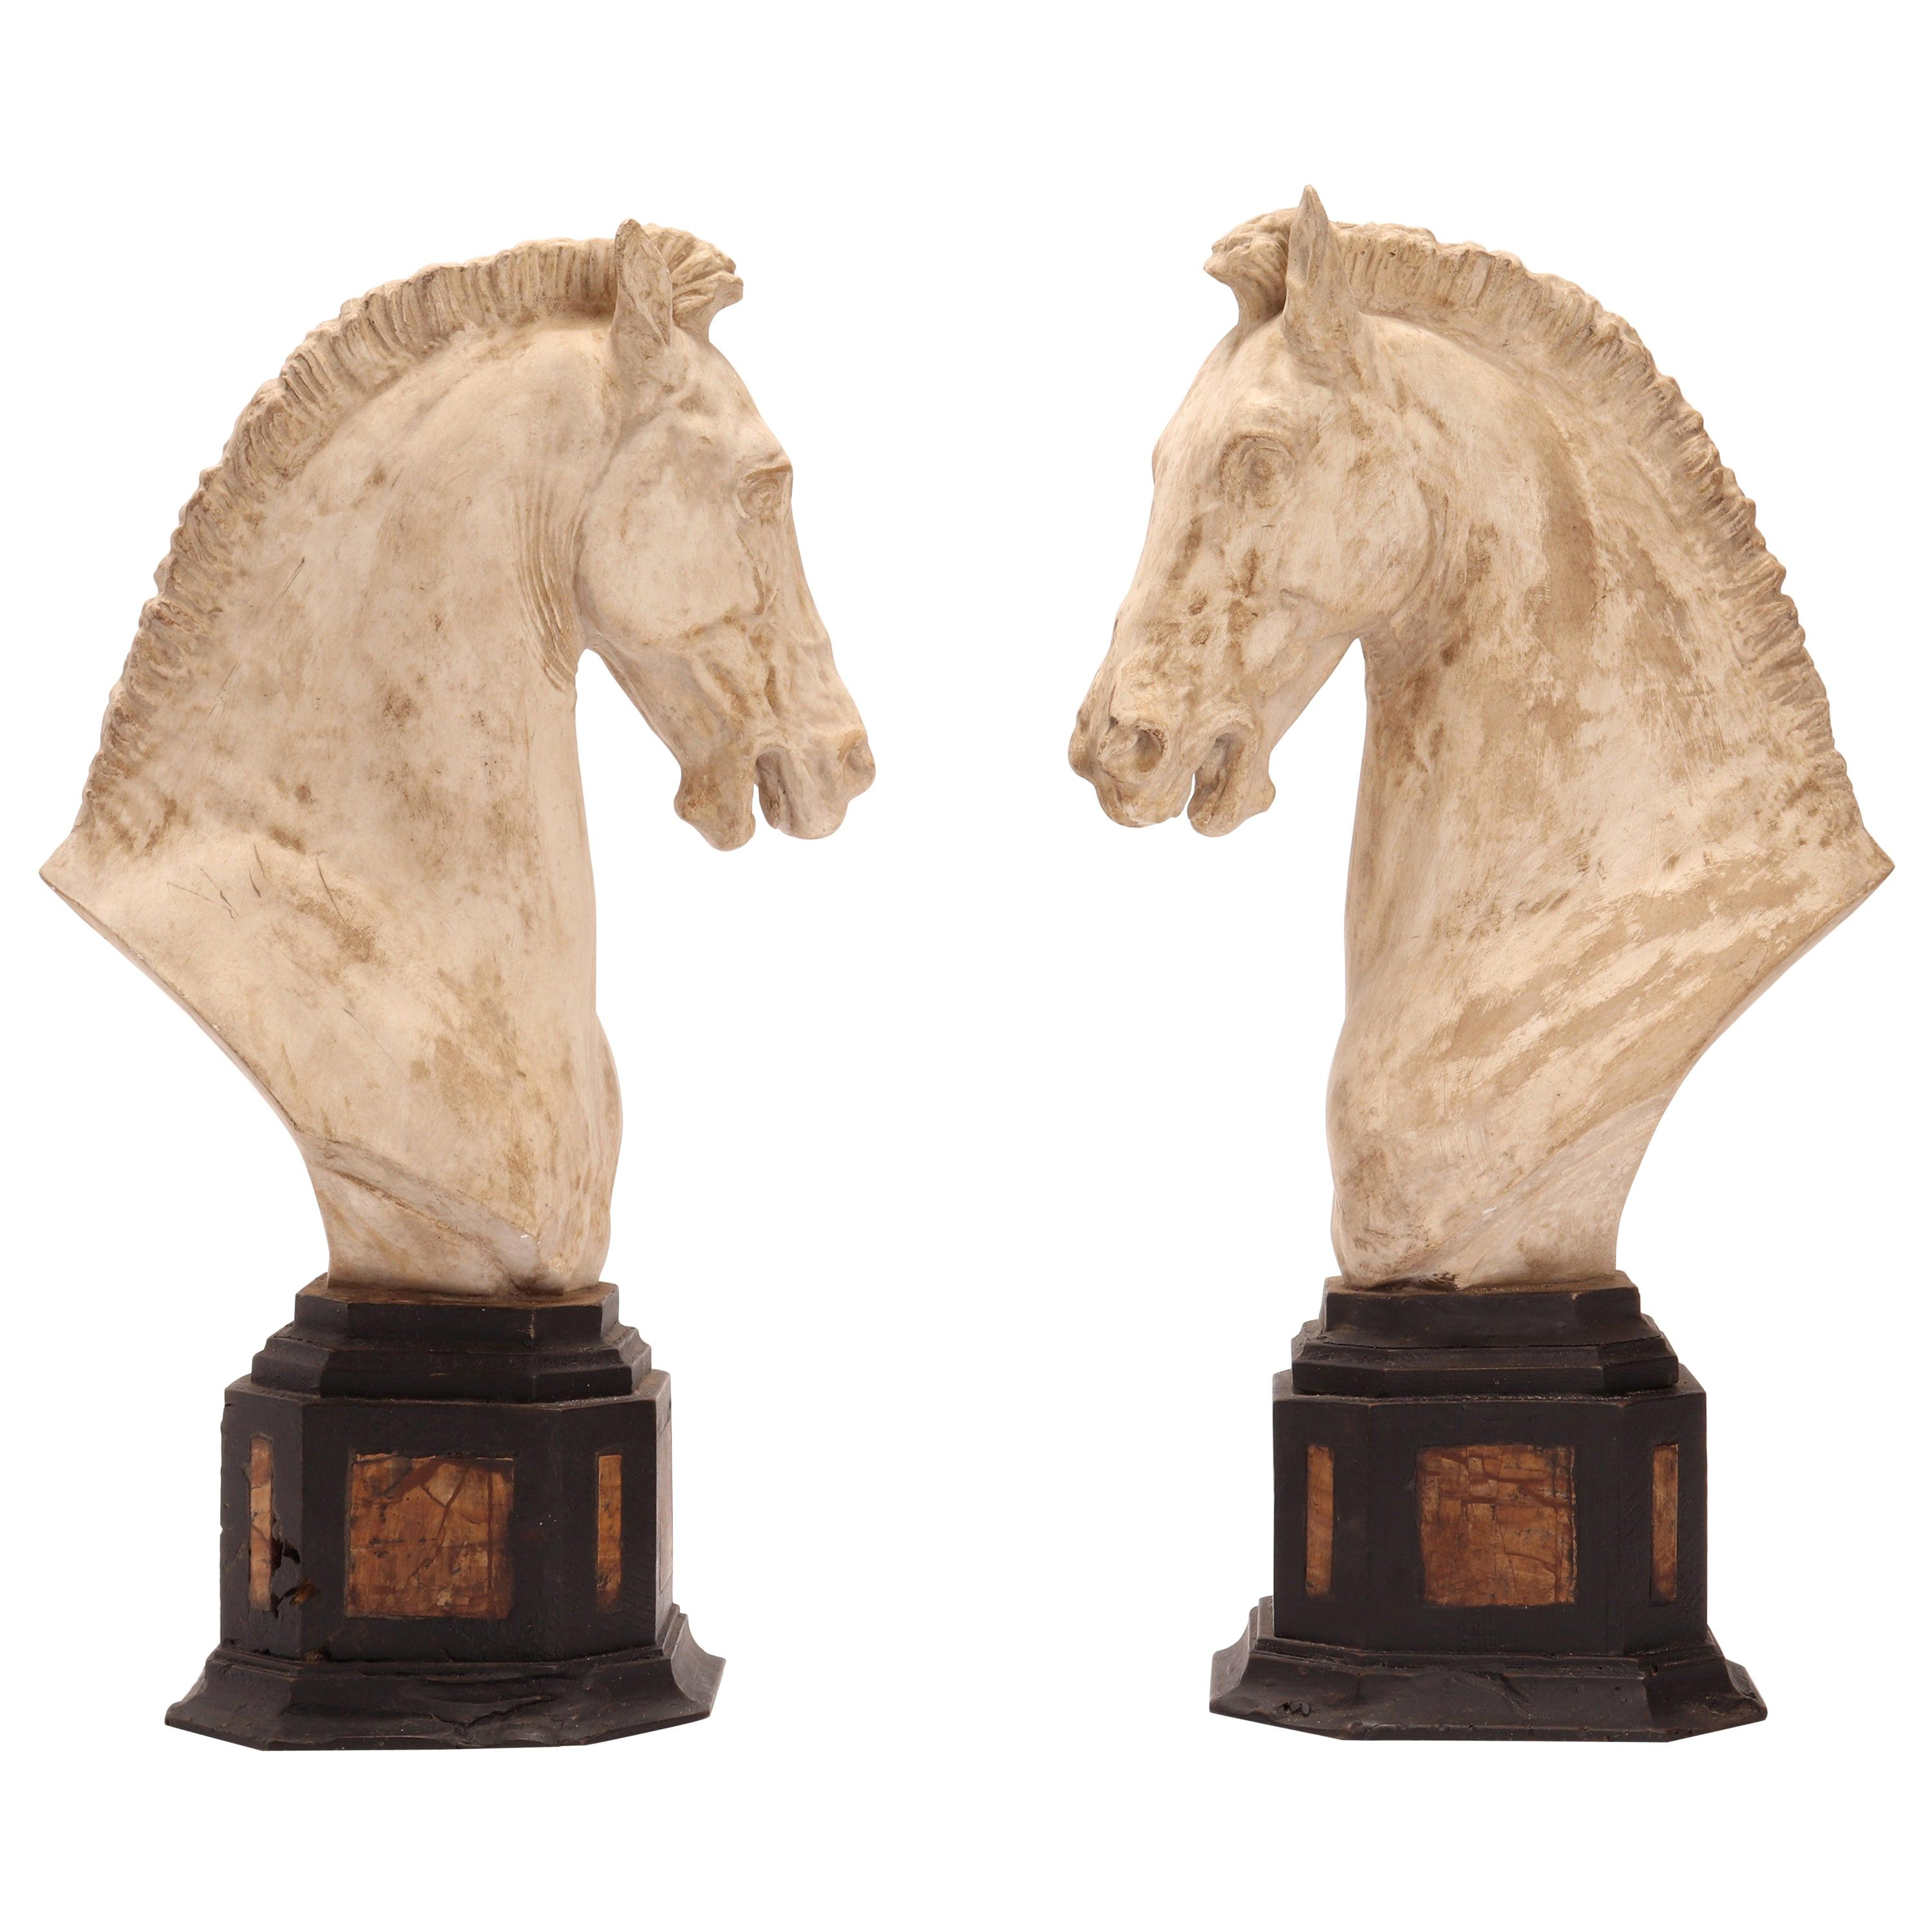 Pair of Horse Heads, Italy, 1870